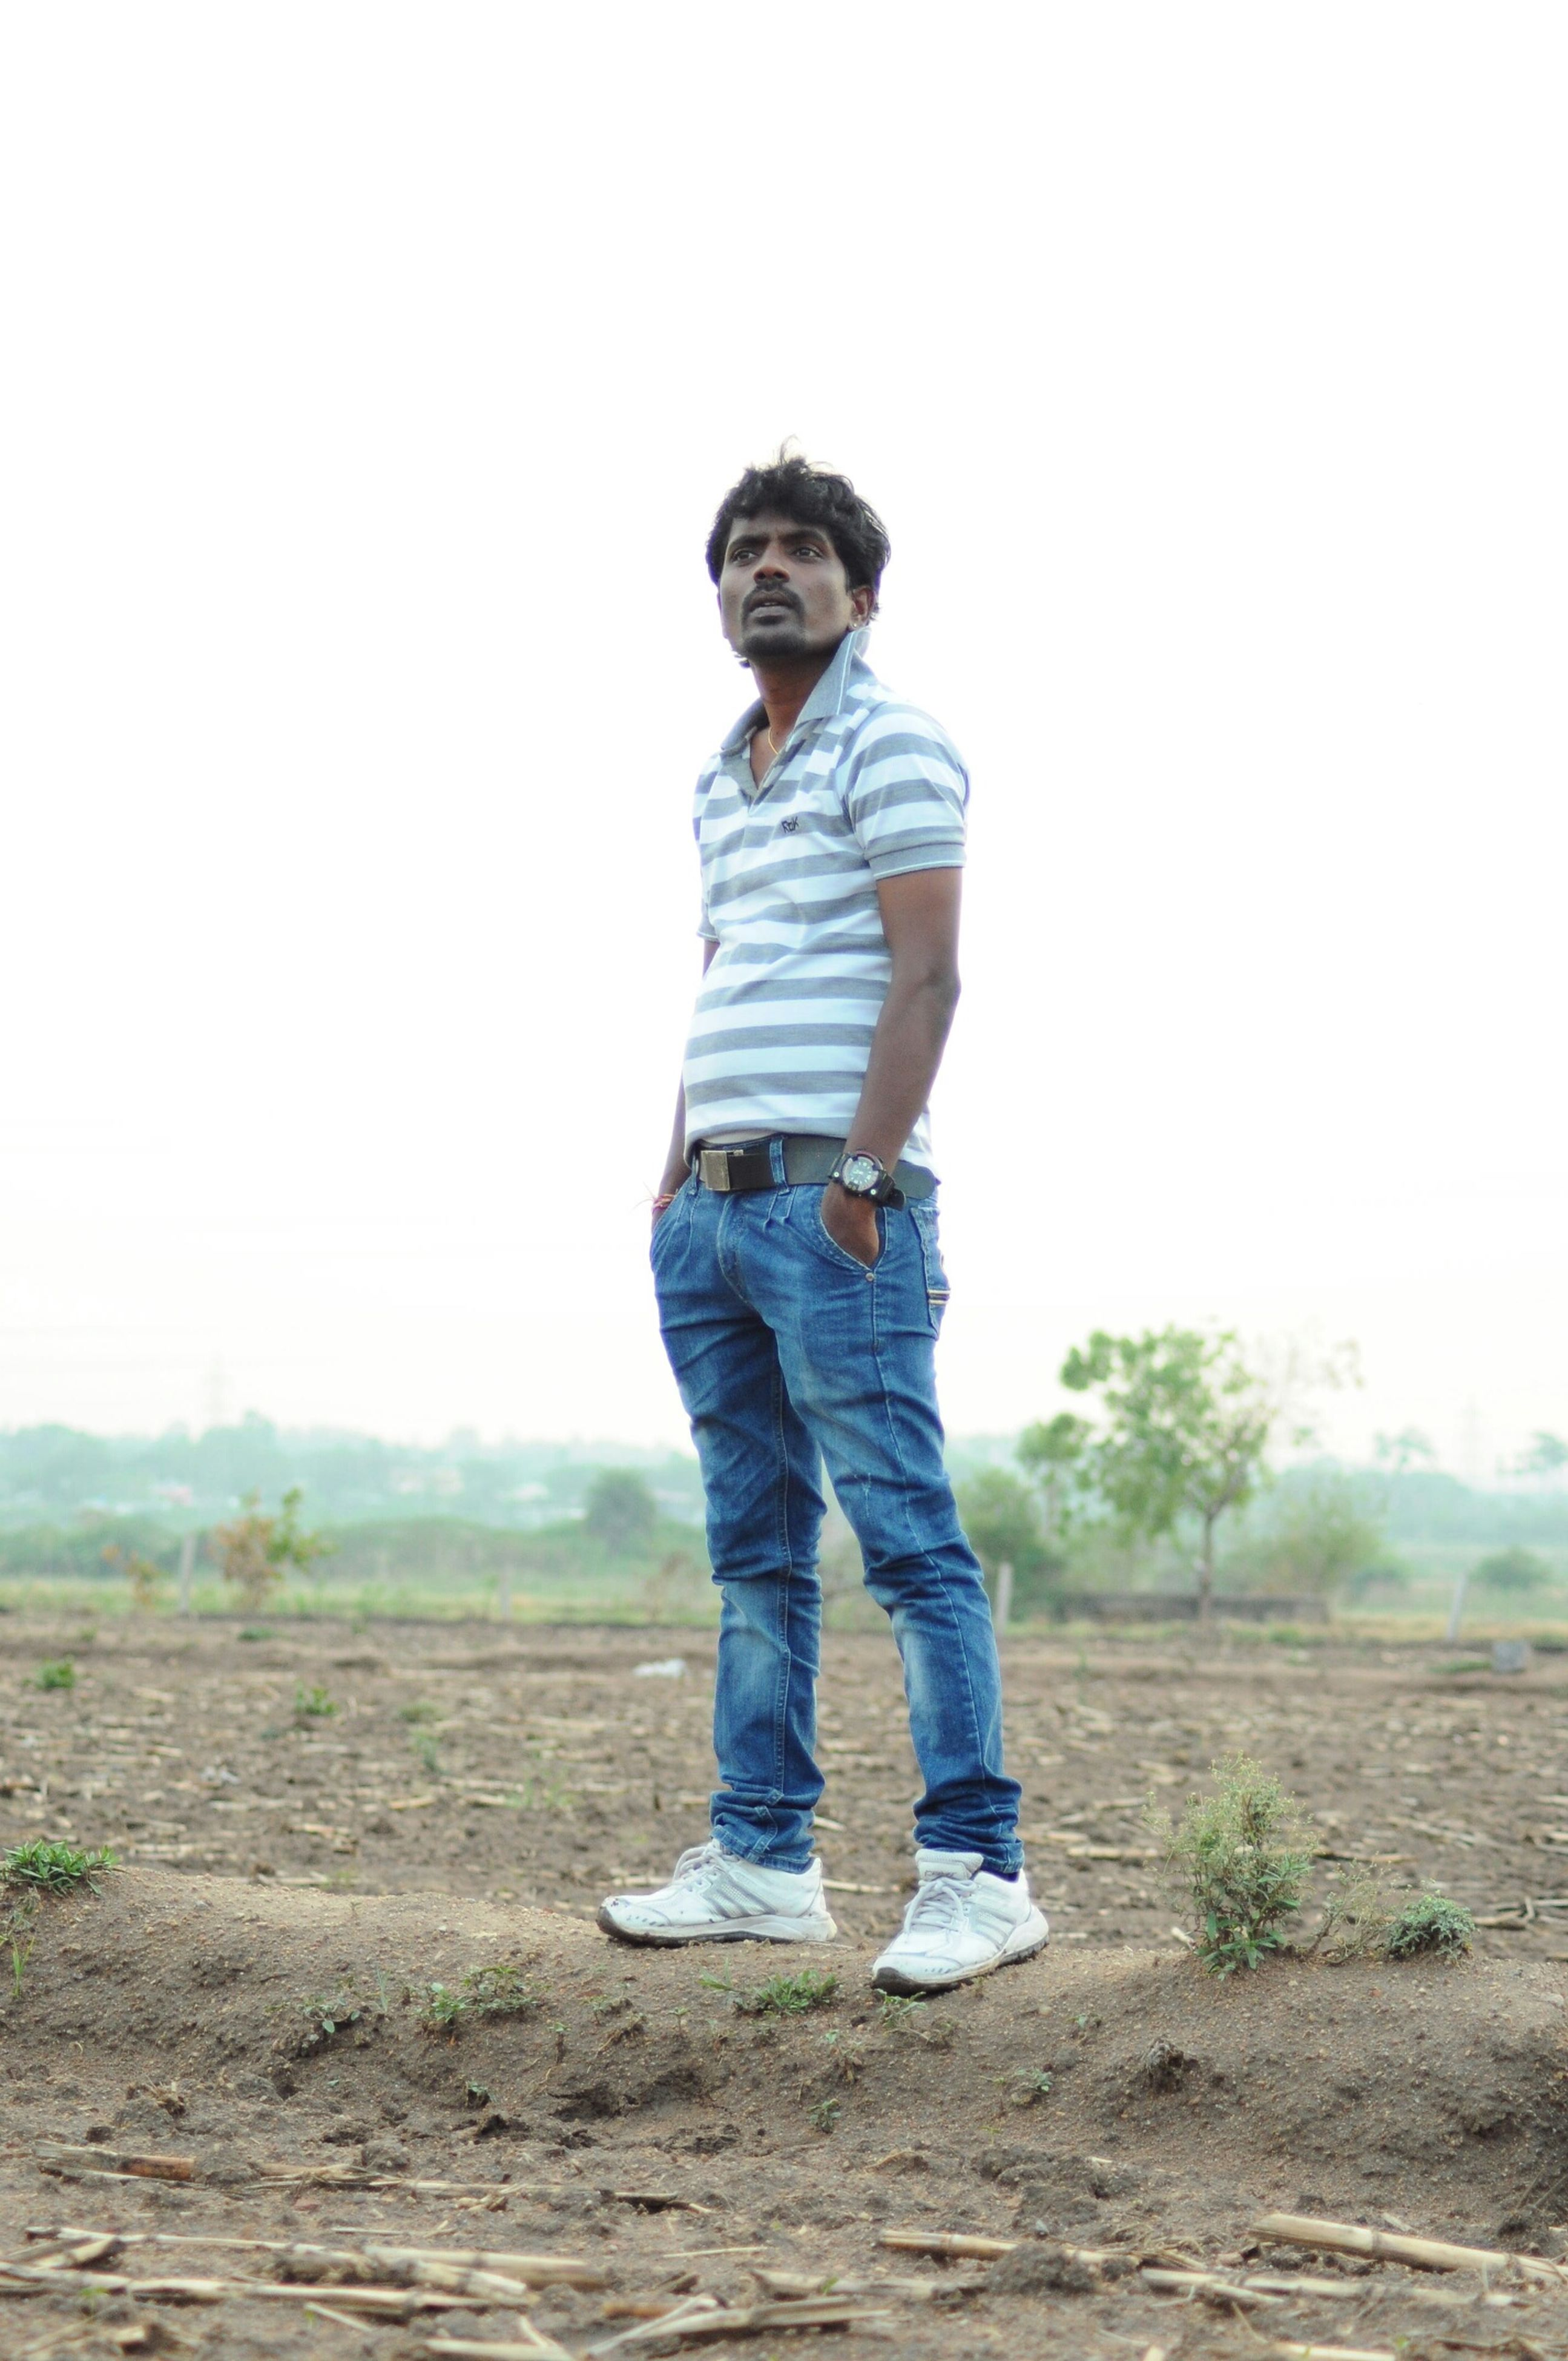 full length, casual clothing, lifestyles, standing, leisure activity, childhood, rear view, field, clear sky, person, landscape, front view, boys, sky, elementary age, day, copy space, nature